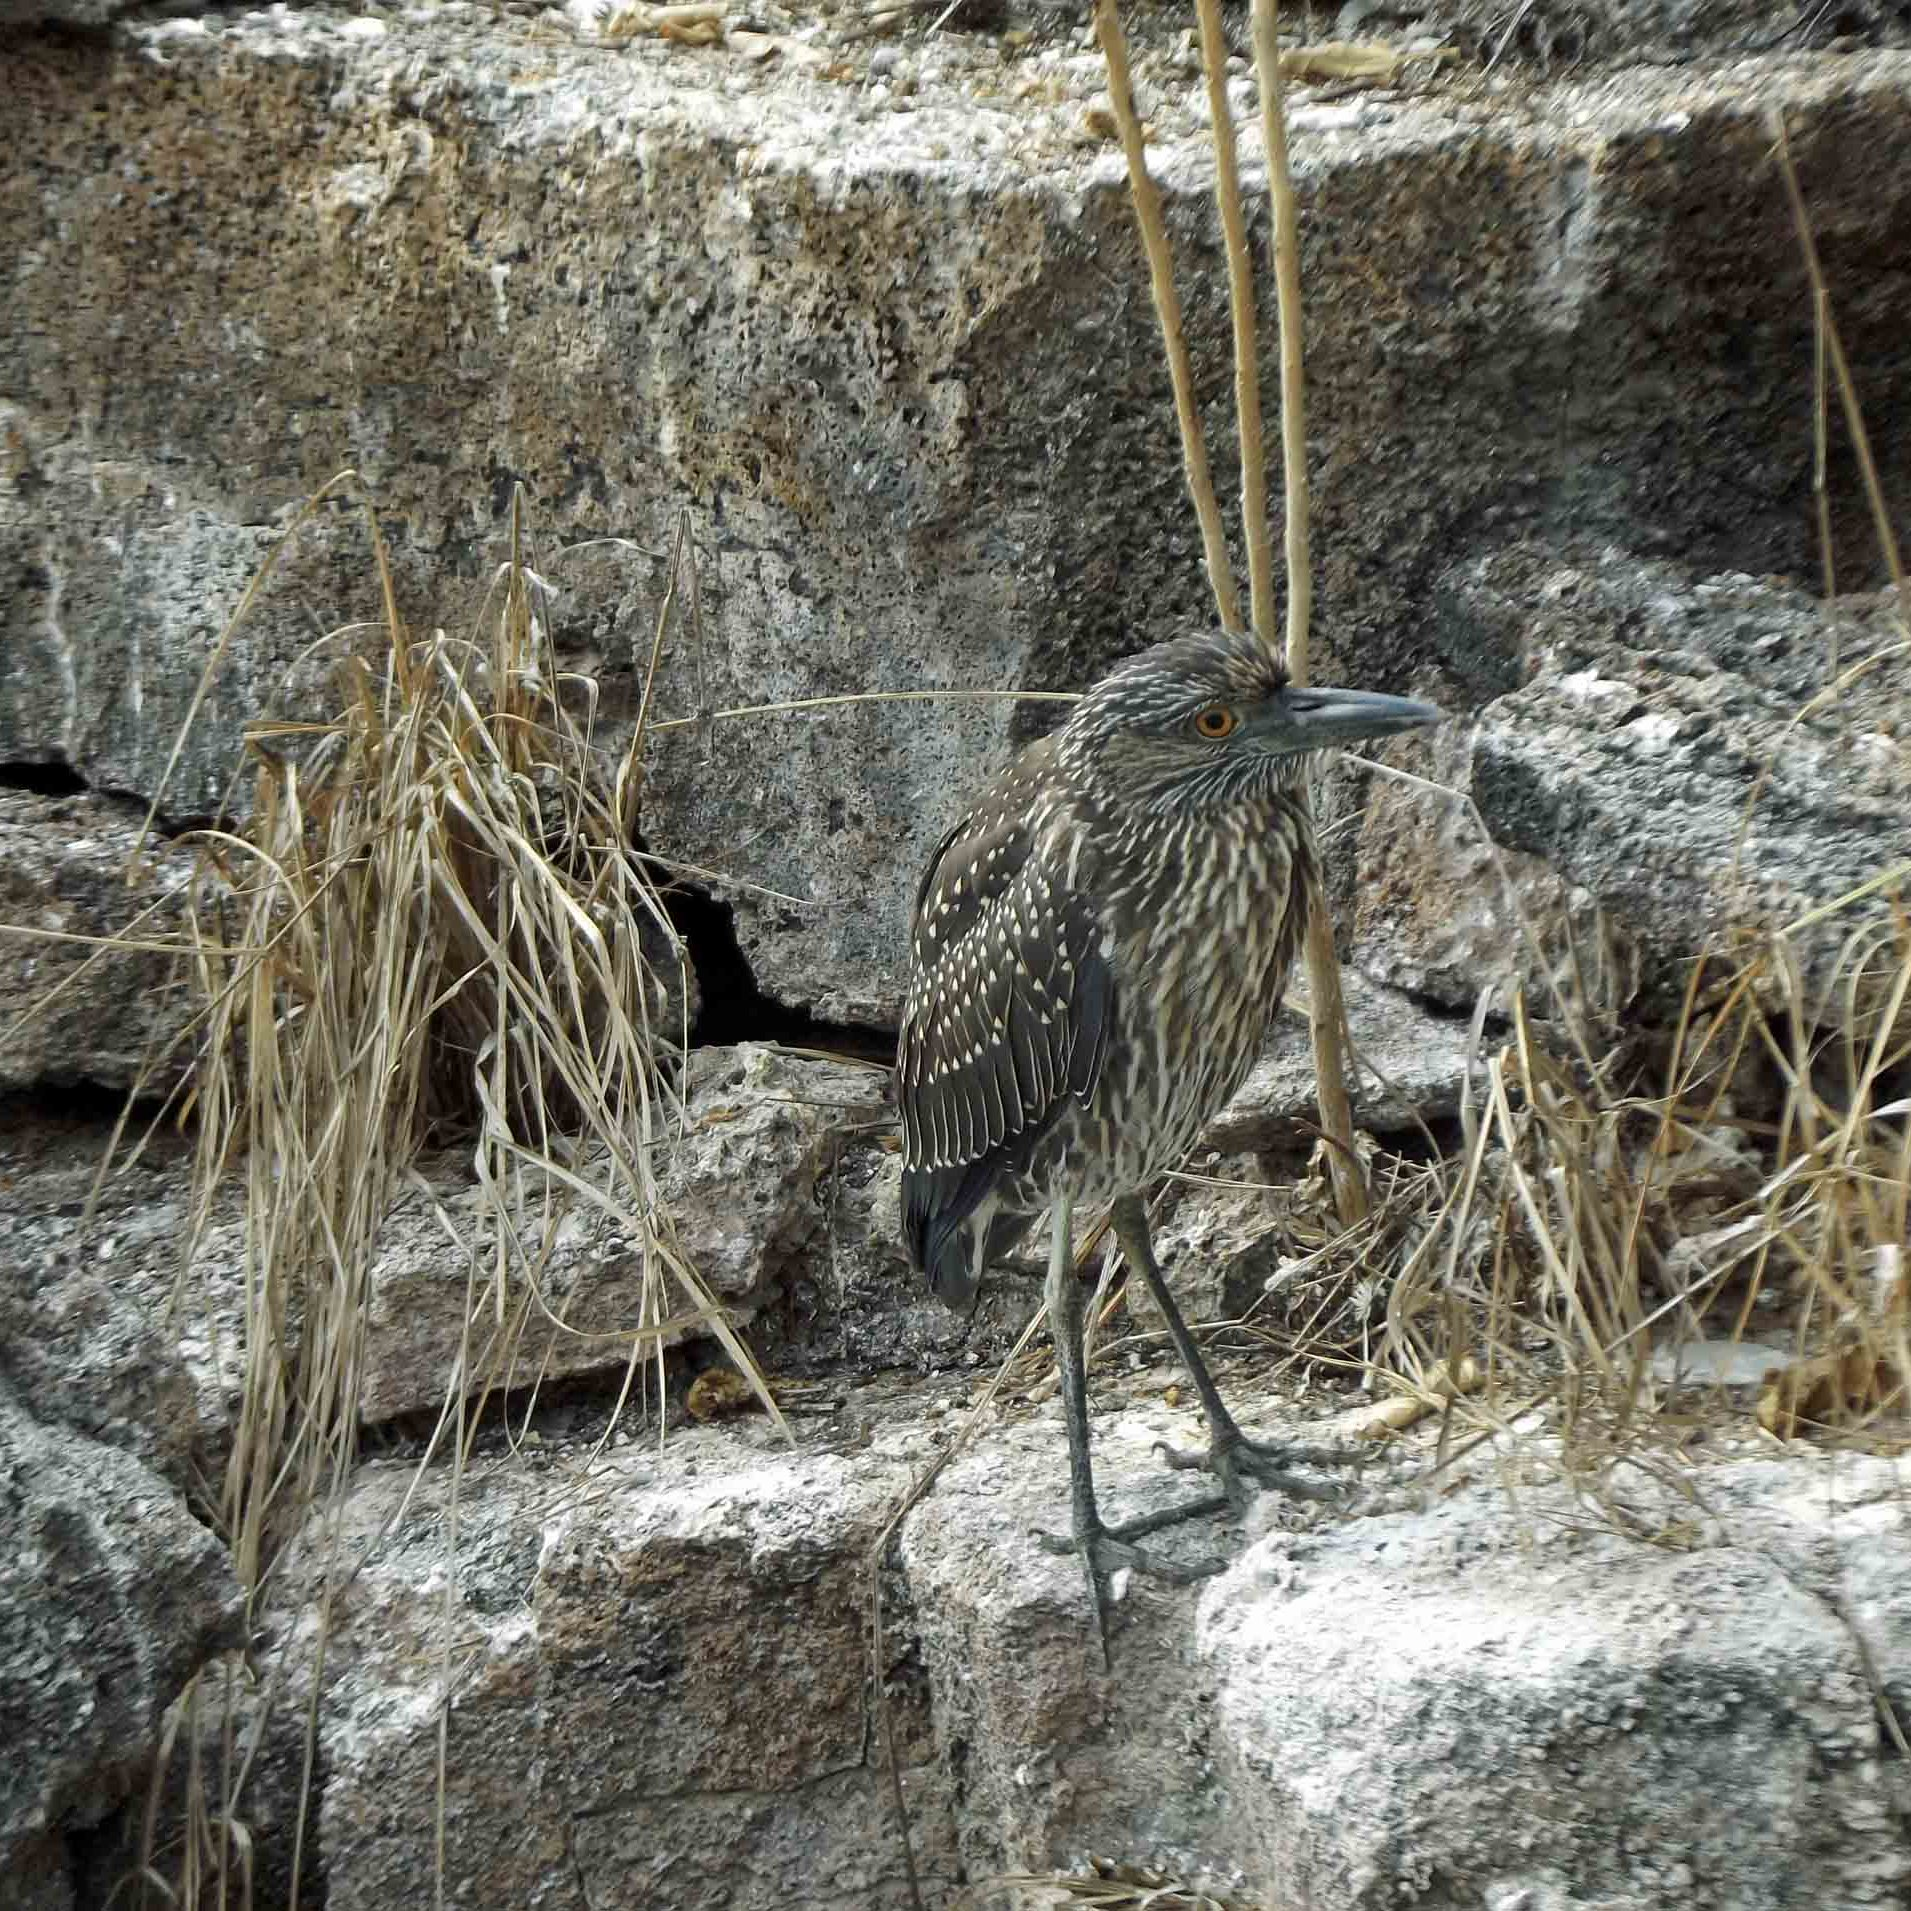 Brown speckled bird with long legs on rocks